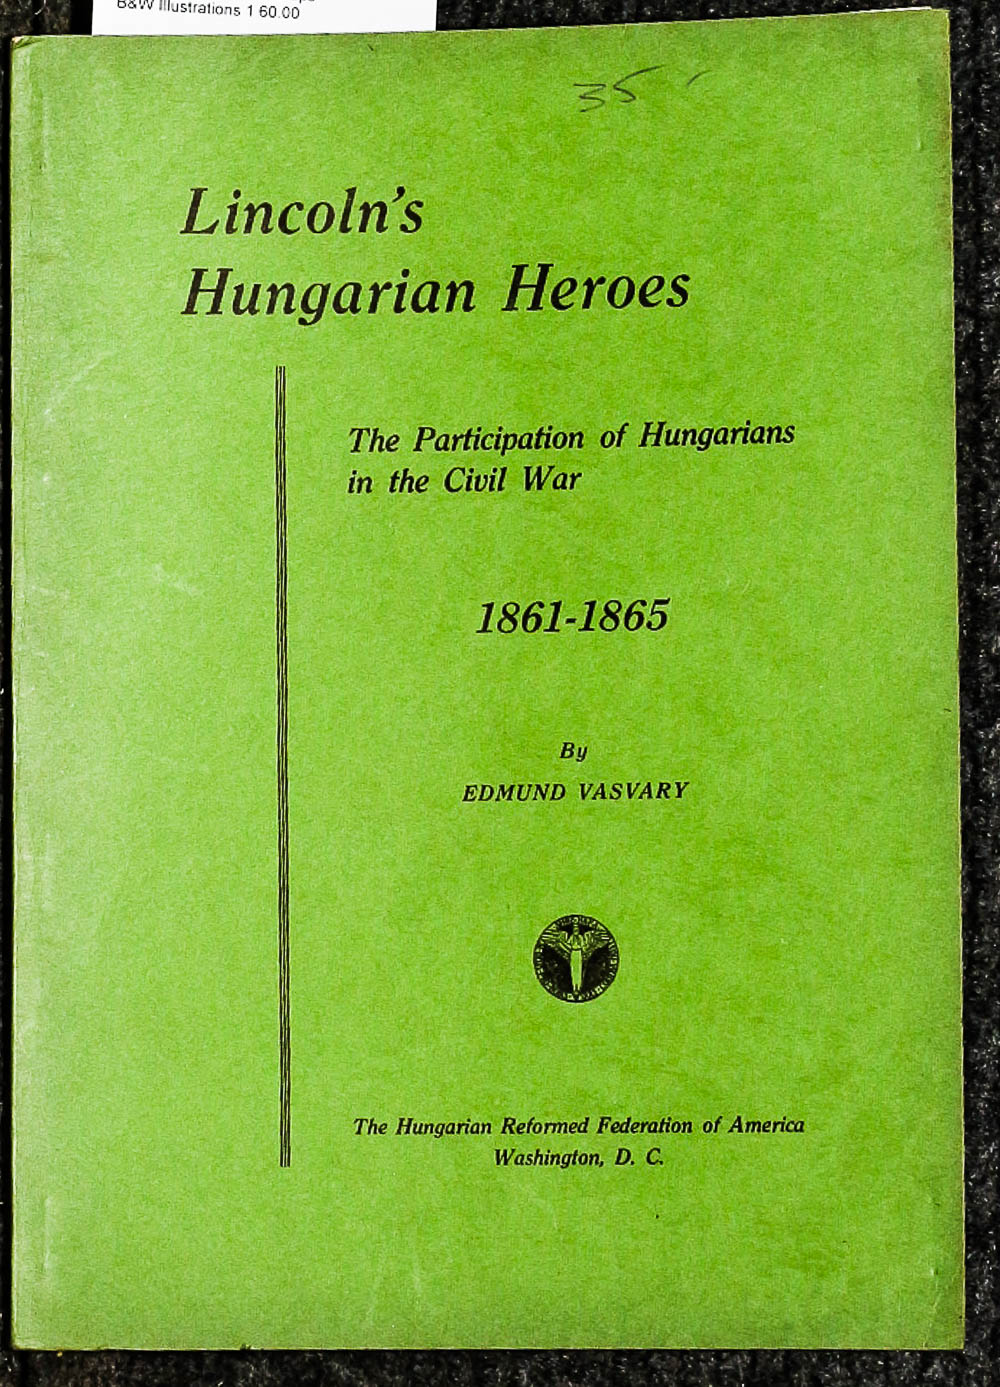 Image for {lincolniana} Lincoln's Hungarian Heroes. The Participation Of Hungarians In The Civil War, 1861-1865